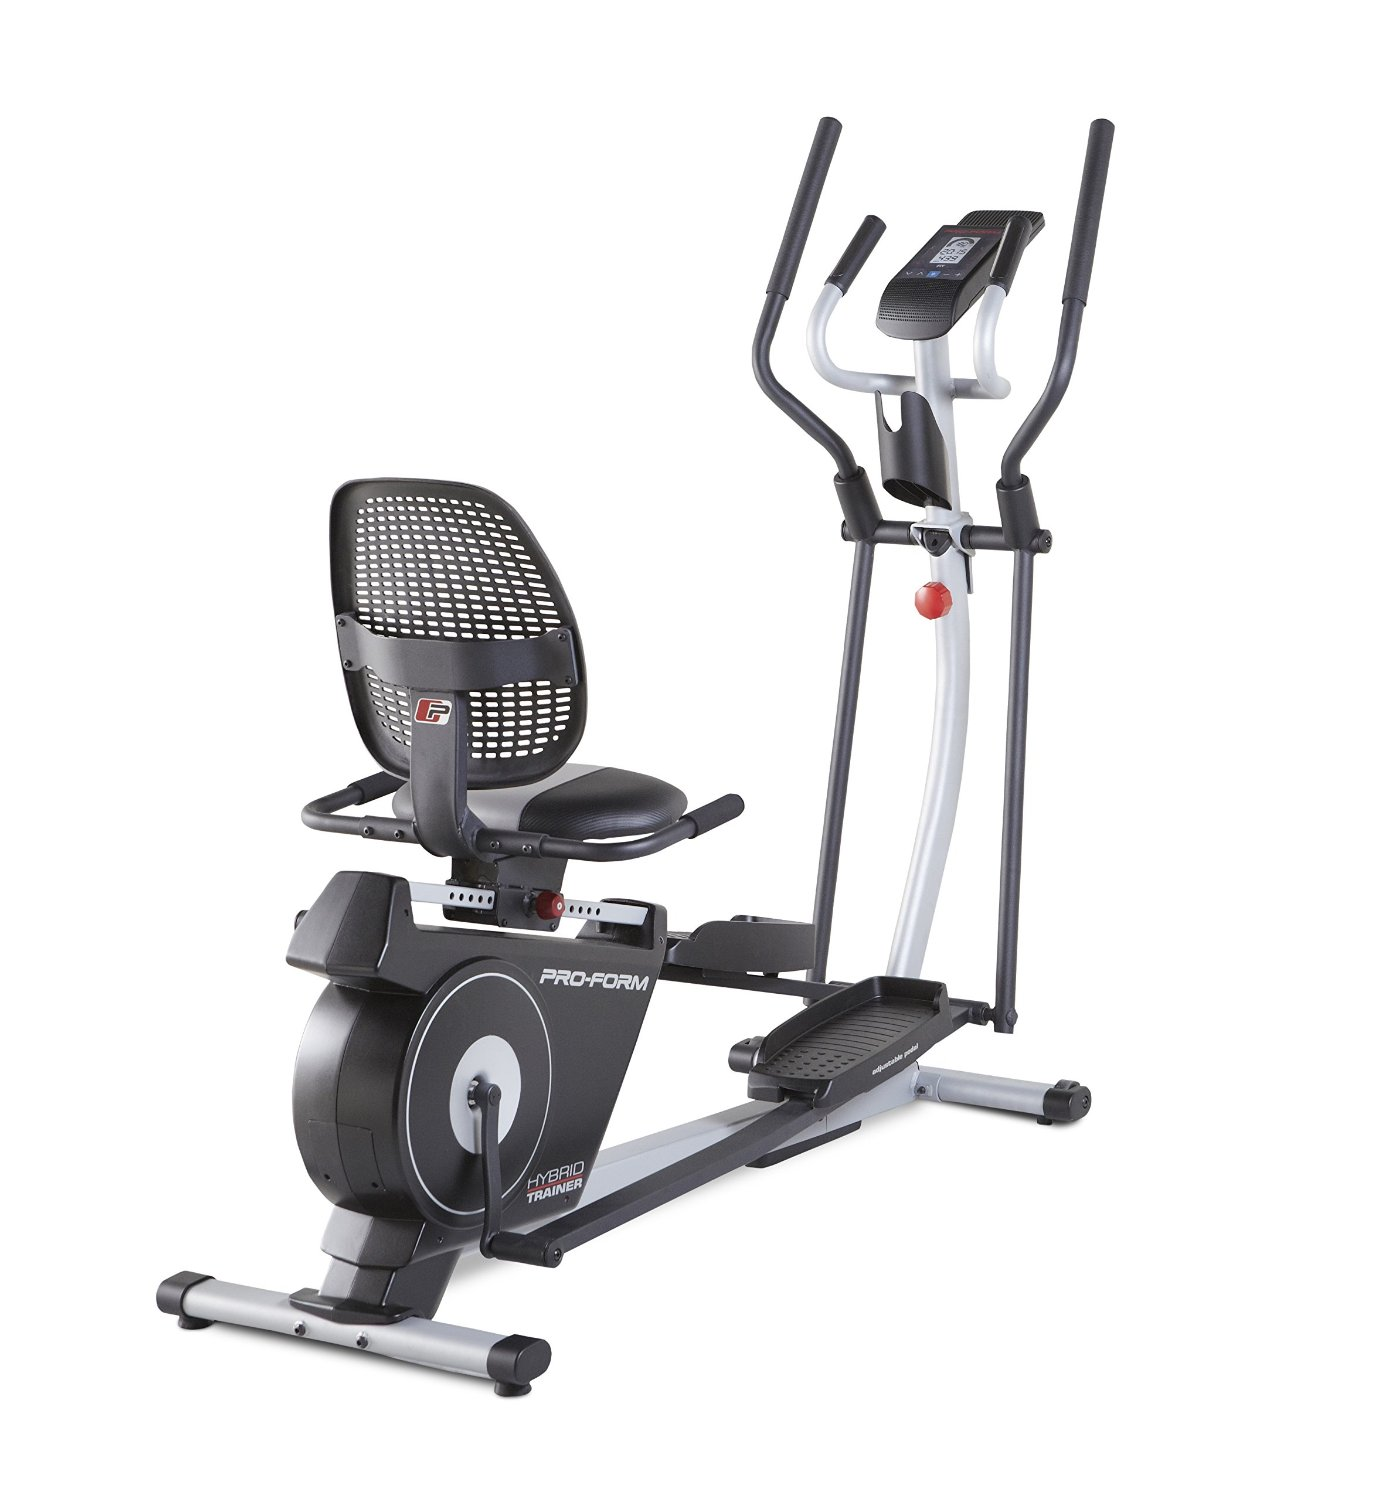 Top 5 Proform Elliptical Reviews — Choose the Best Elliptical Trainer in 2020